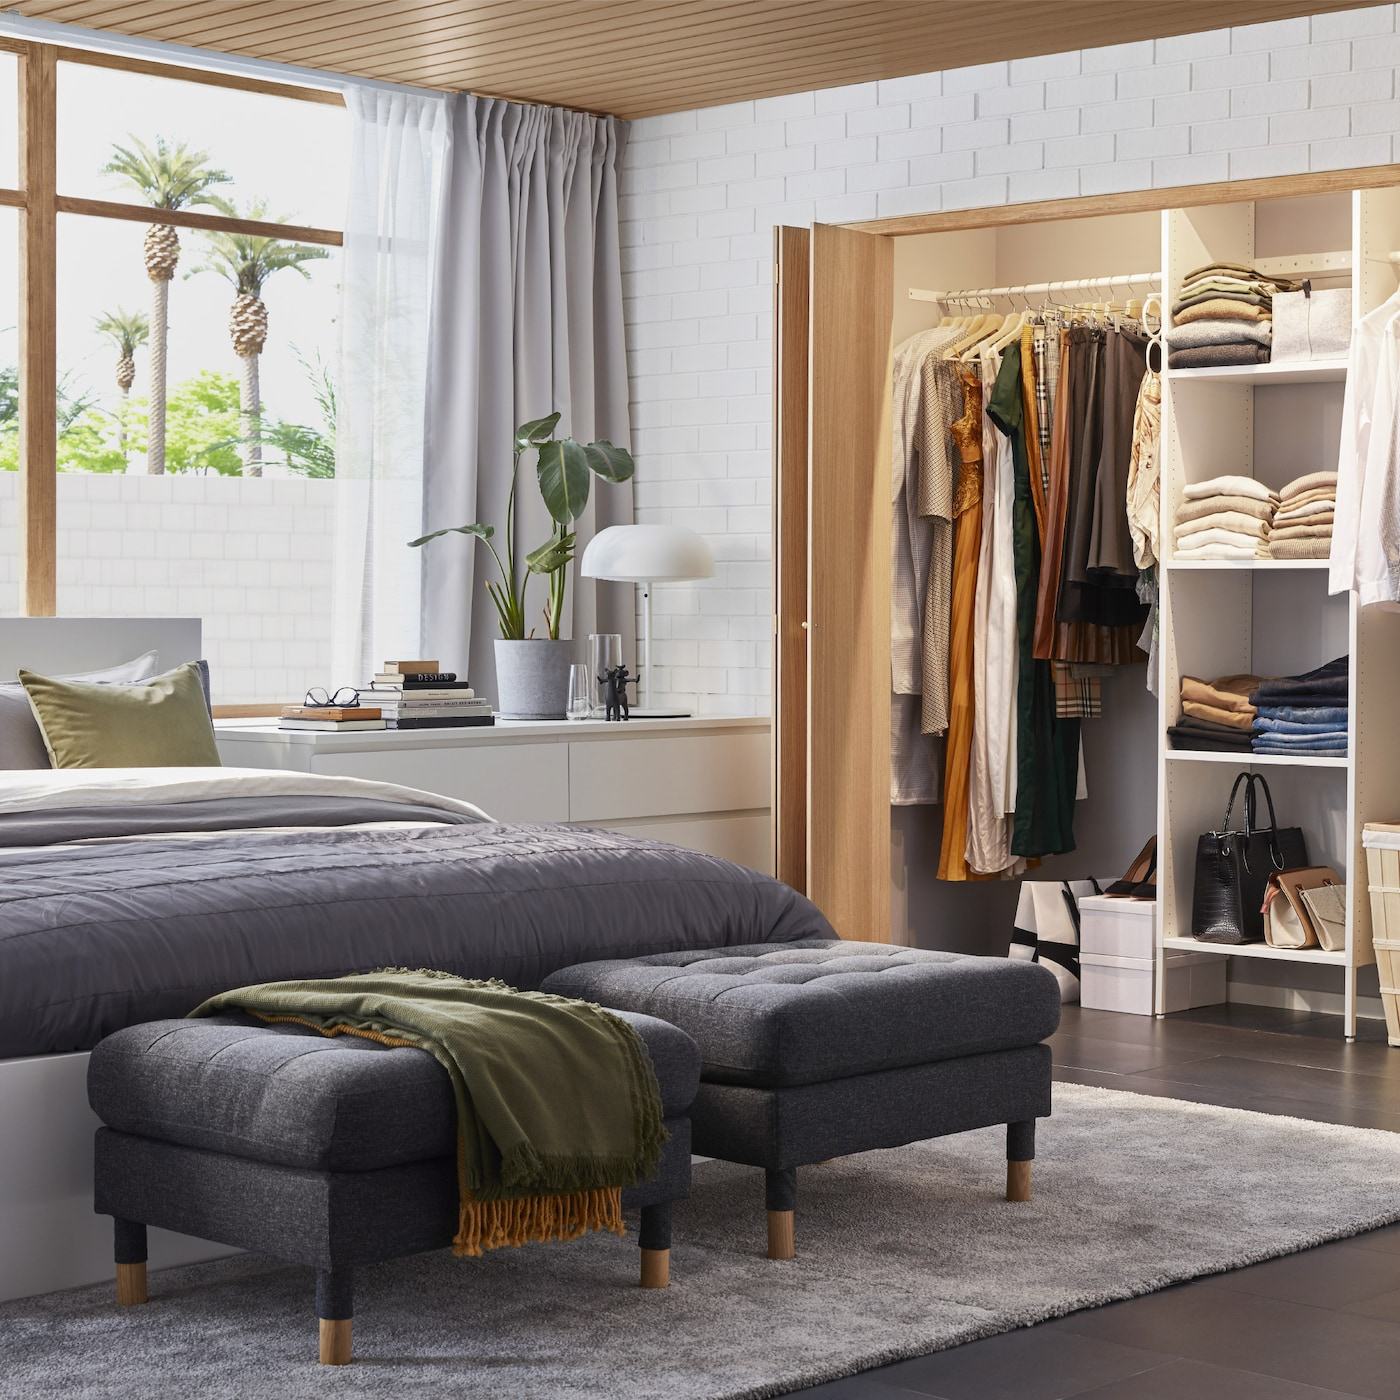 A bedroom with a built-in wardrobe solution, a white bed frame, a white chest of drawers and two dark grey footstools.